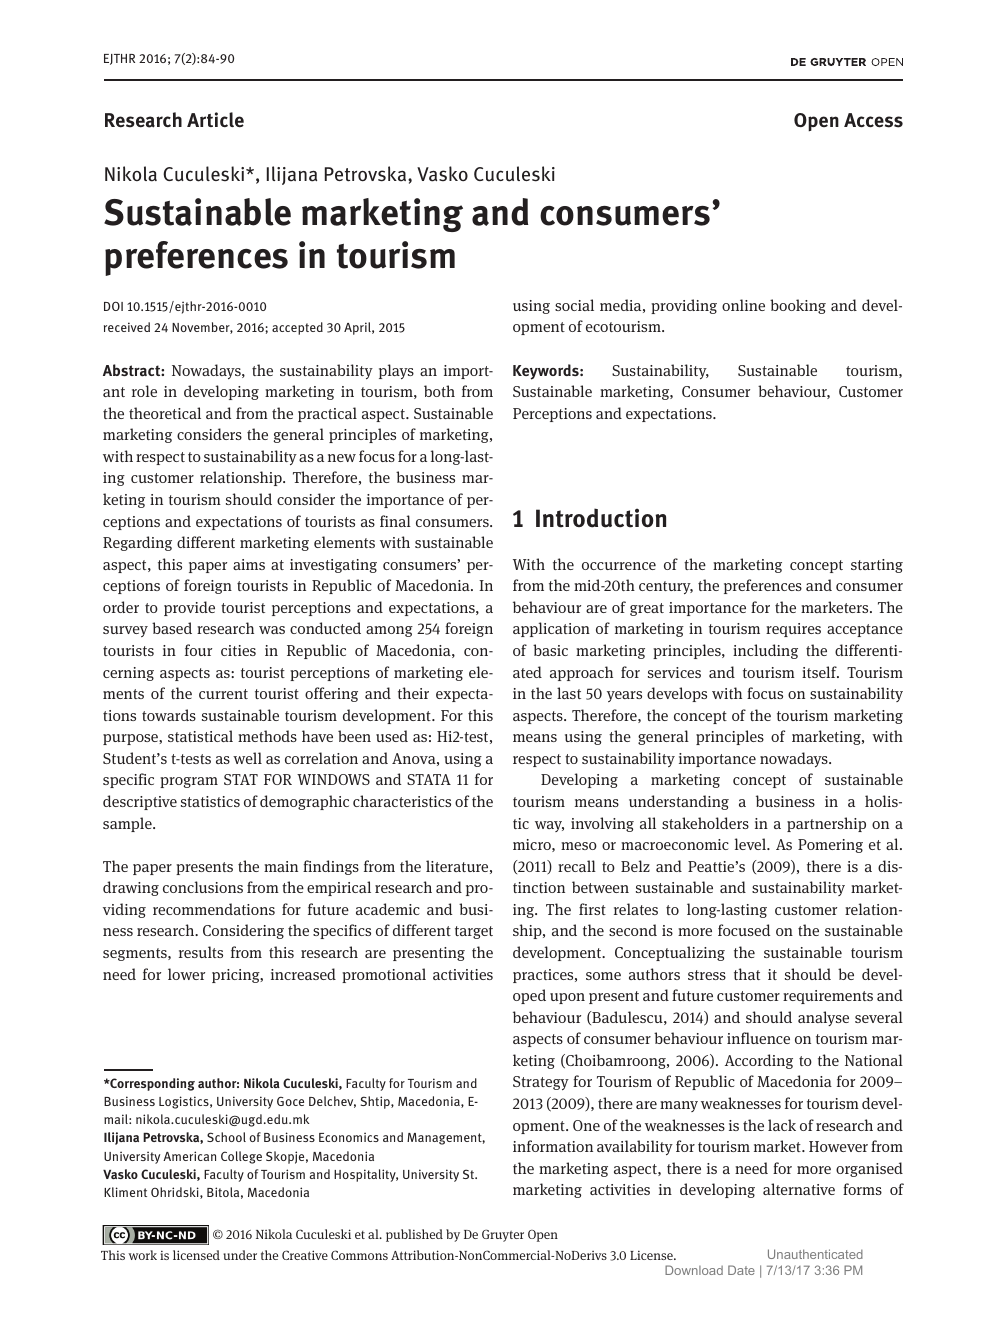 Sustainable marketing and consumers' preferences in tourism – topic